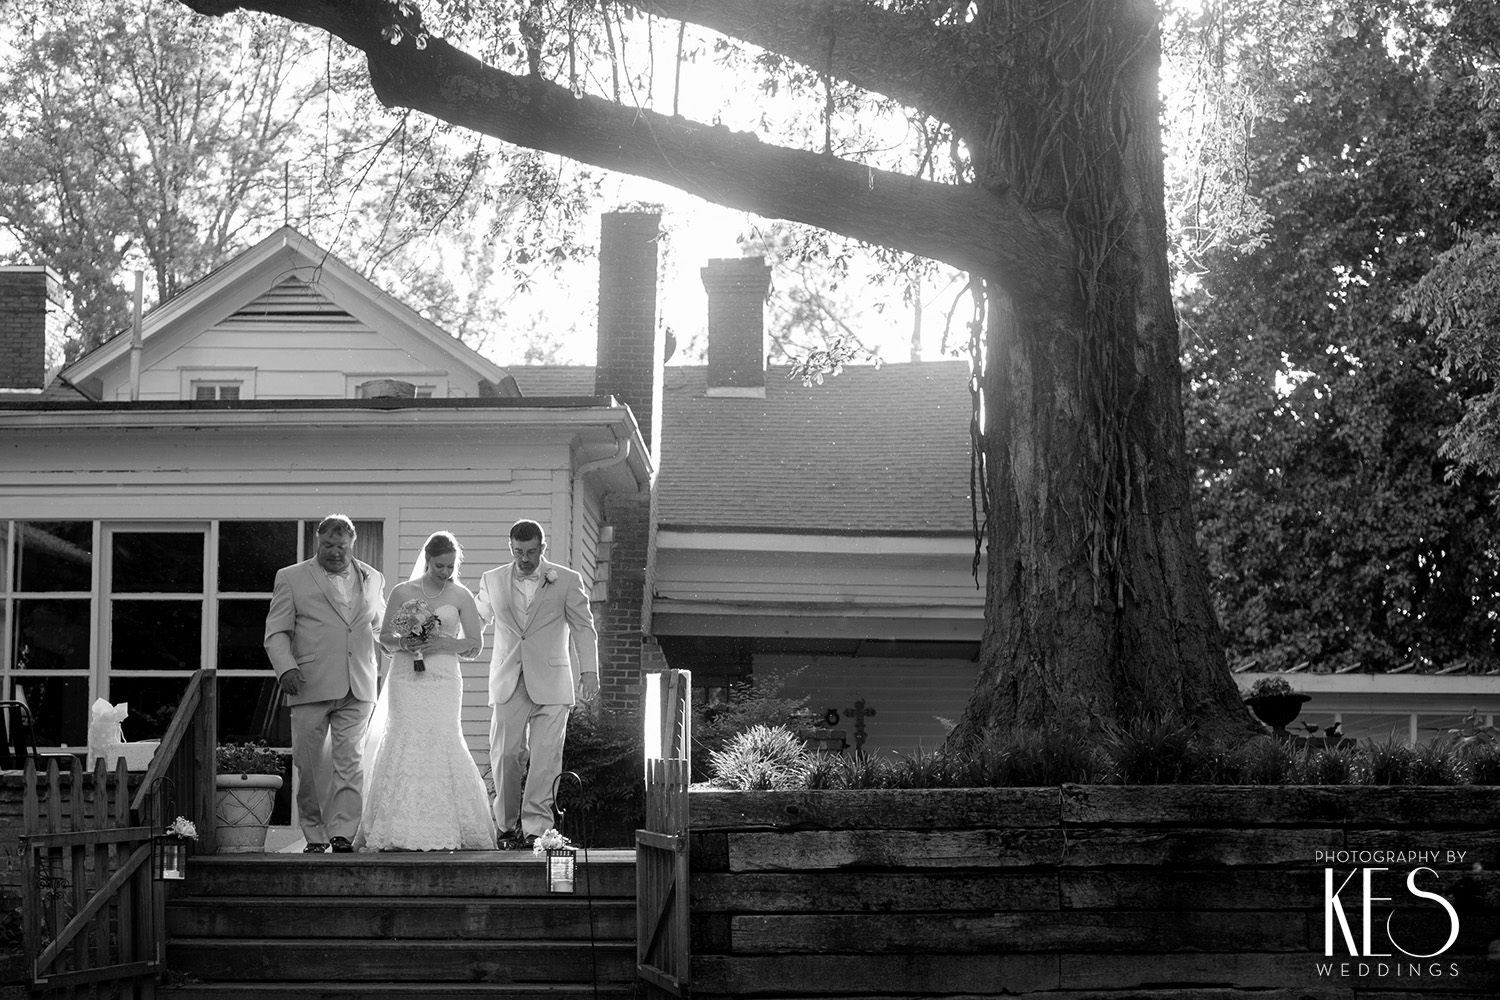 Hillary_Craig_Ashley_Alexander_House_KES_Weddings_26.JPG